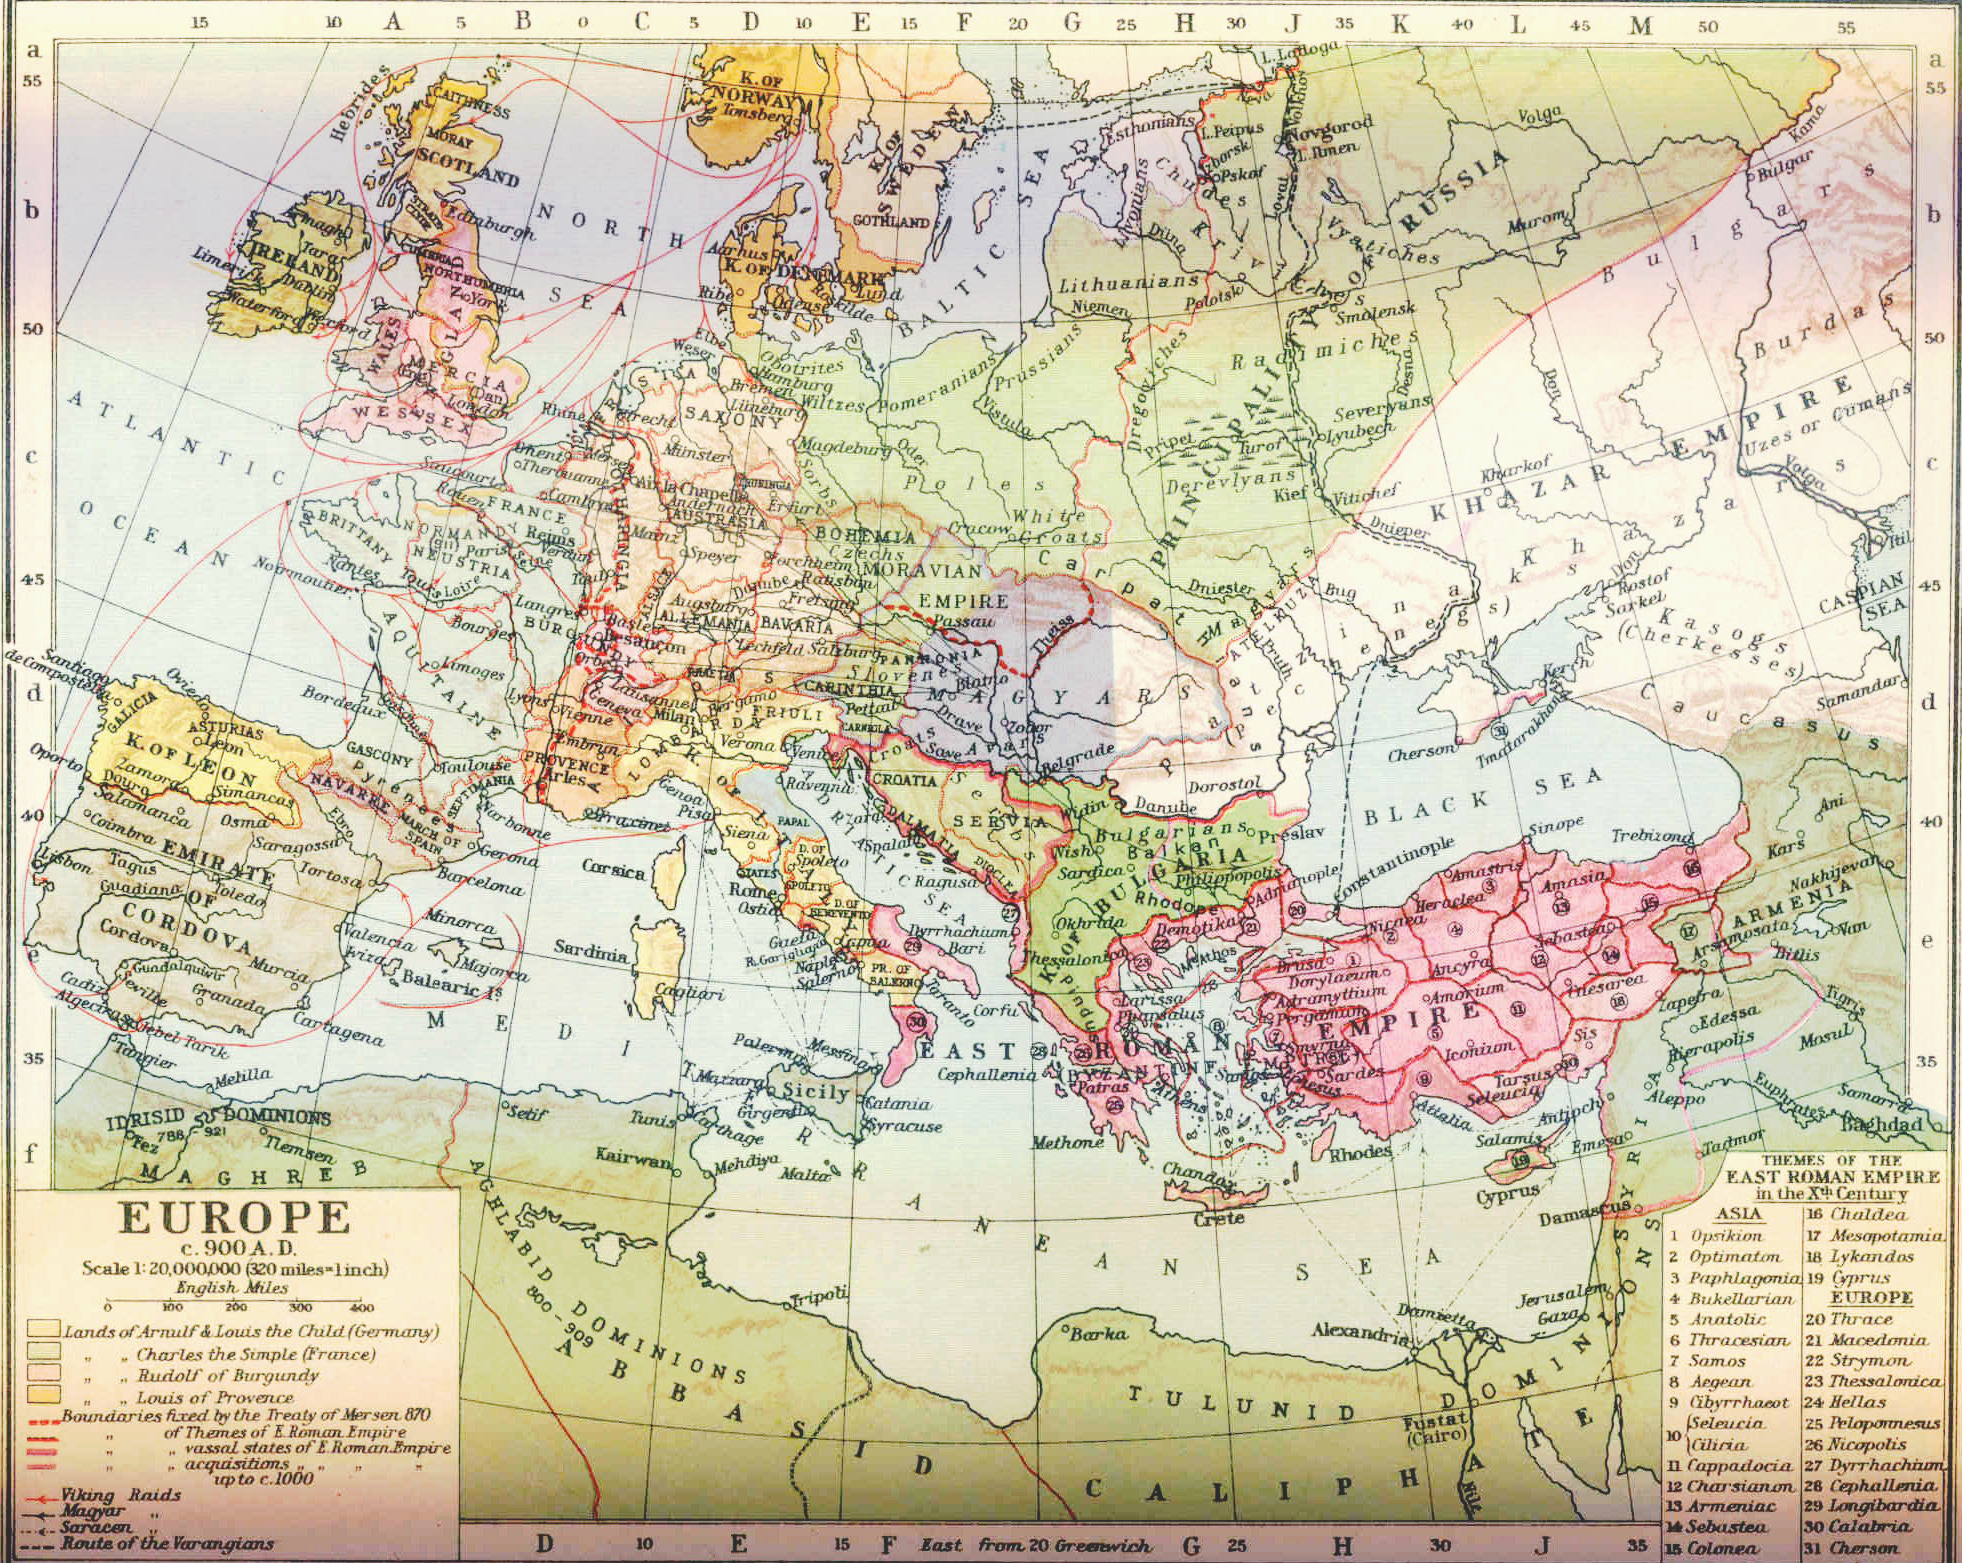 Europe Hungarian conquest of the Carpathian Basin